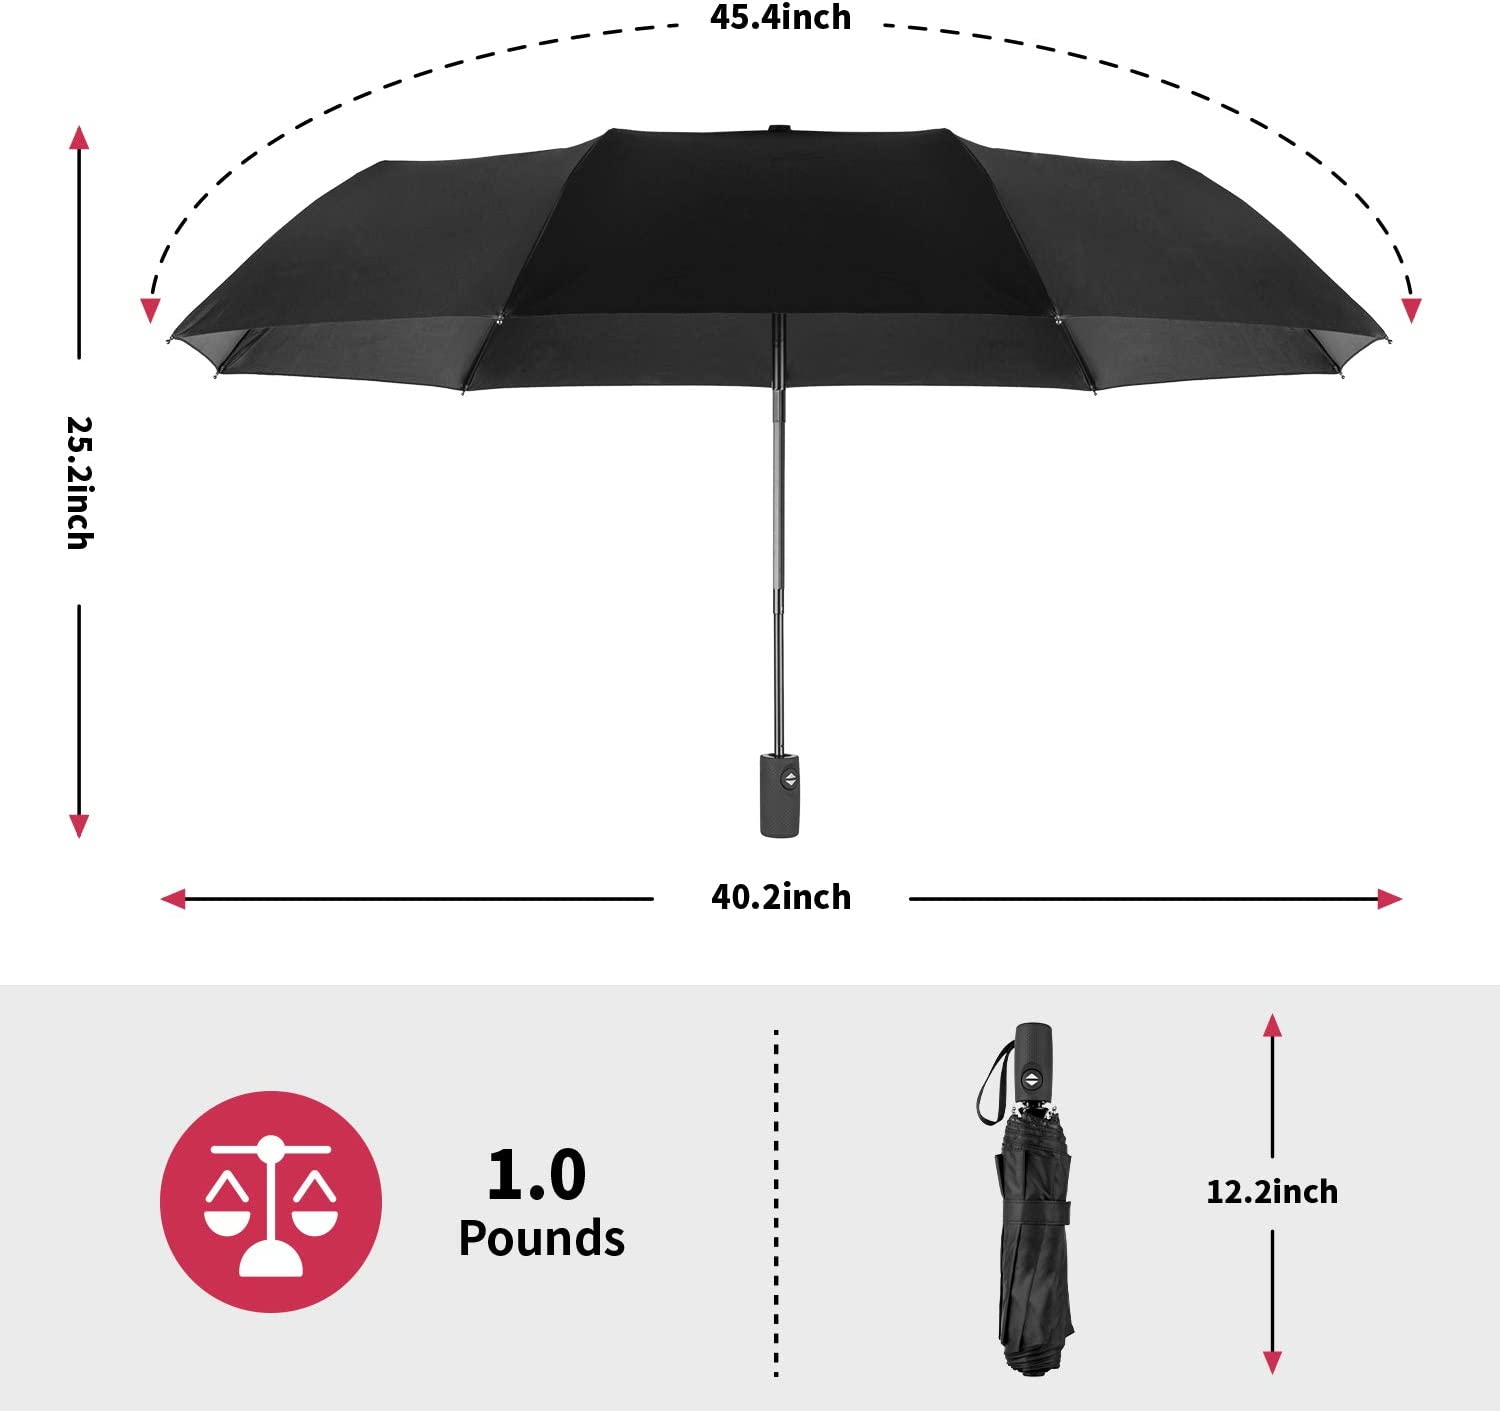 Fox Hedgehog And Fruit In The Forest Compact Travel Umbrella Windproof Reinforced Canopy 8 Ribs Umbrella Auto Open And Close Button Personalized